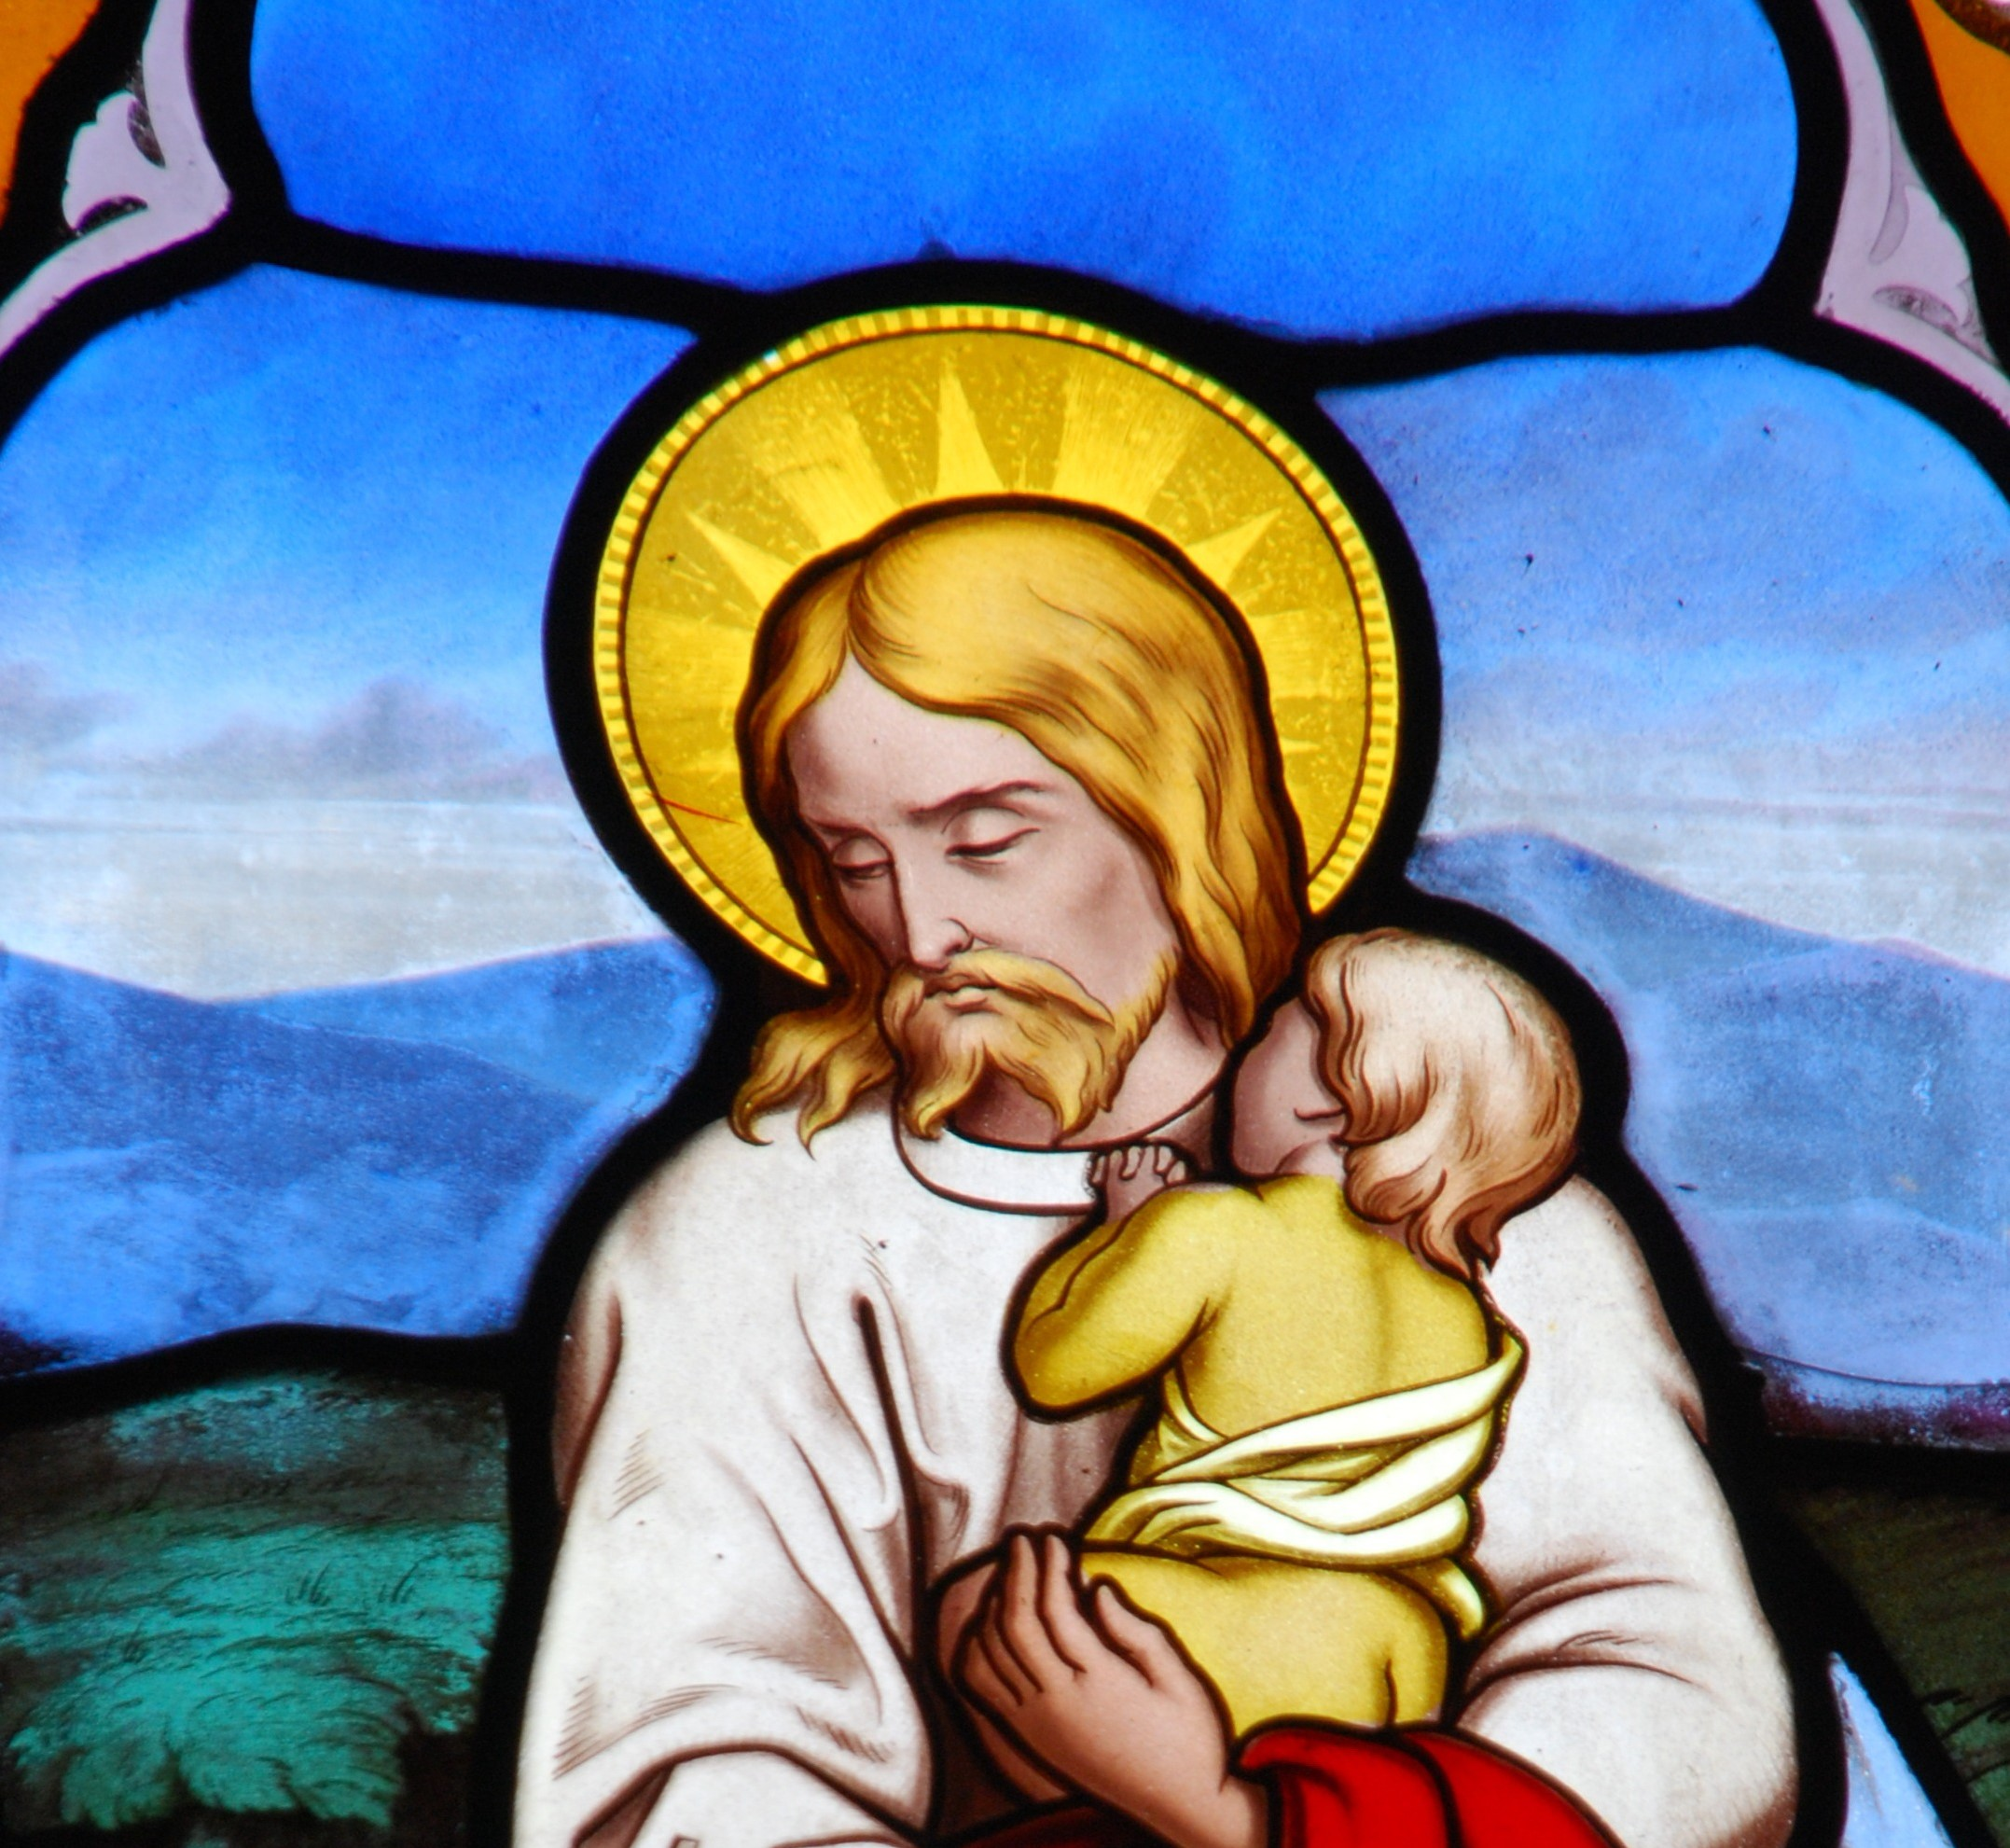 Religious stained glass window with Jesus